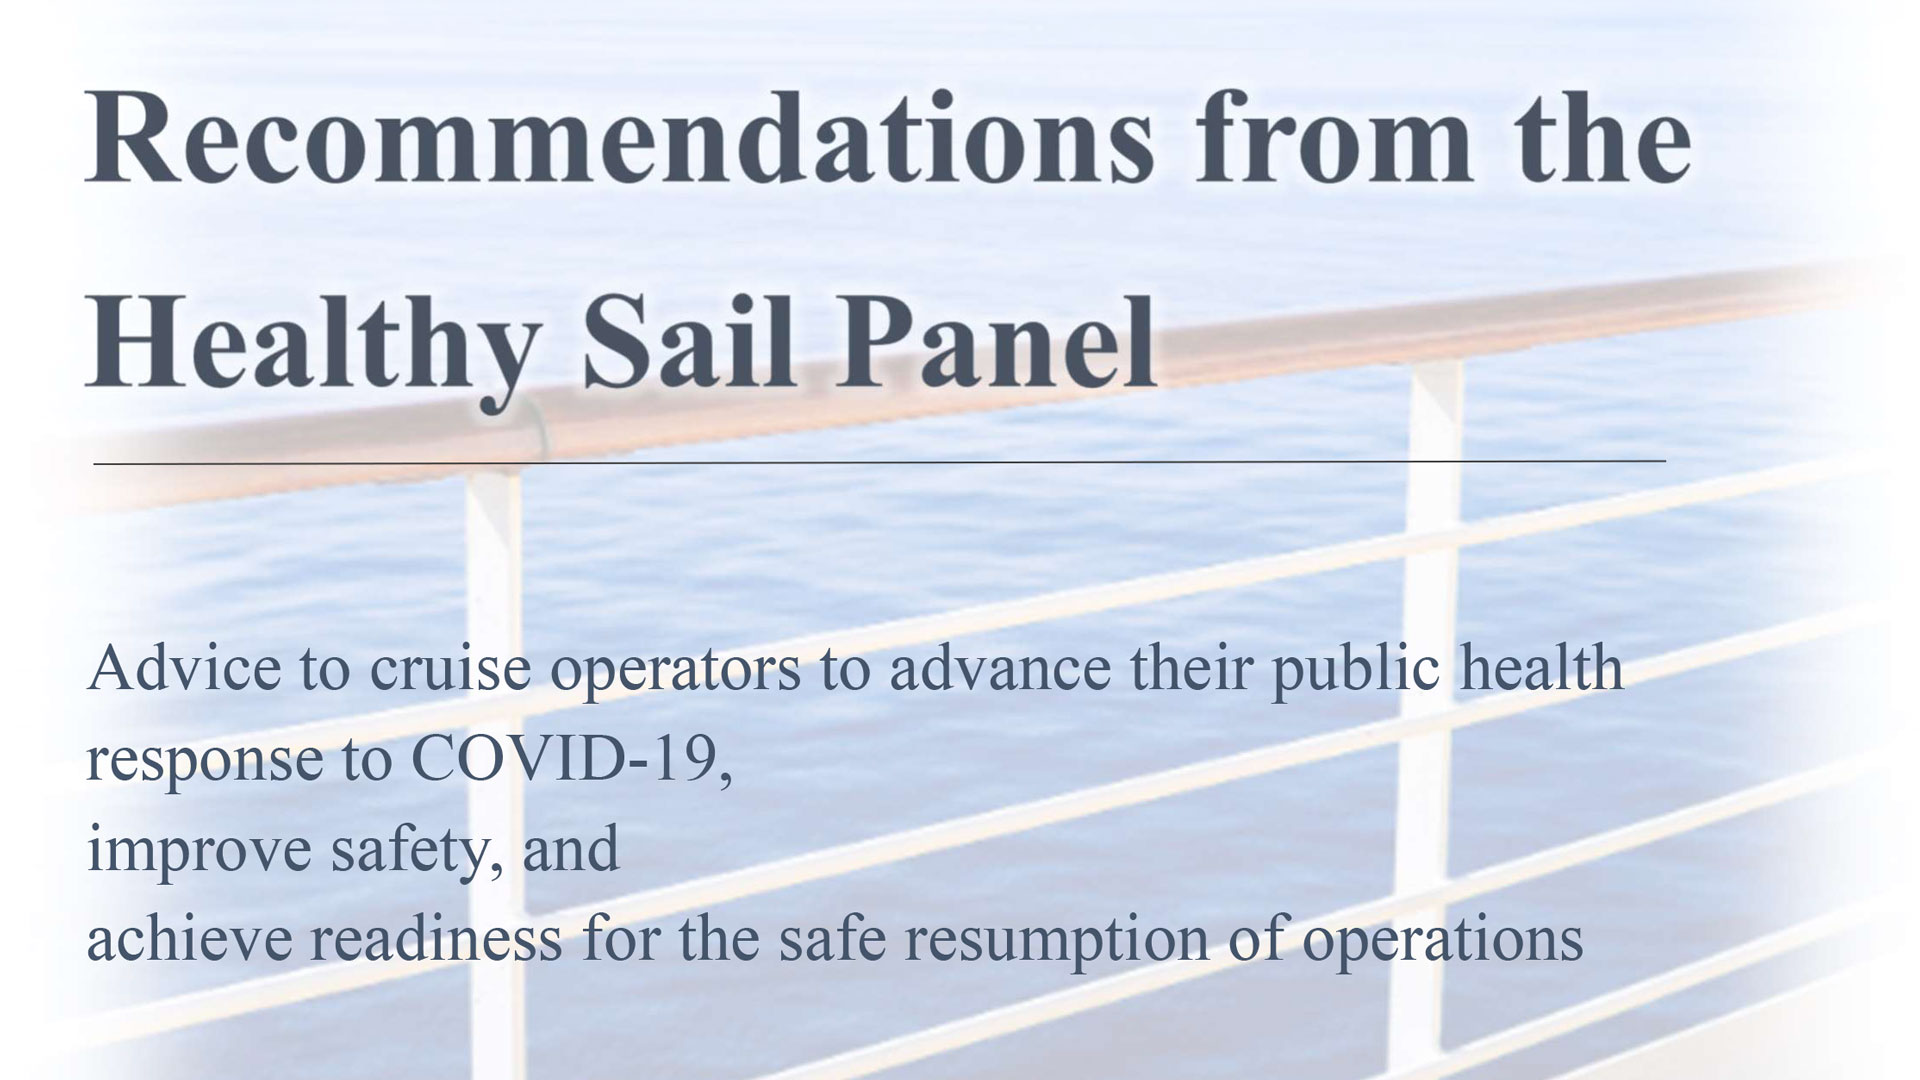 RCL NCL Healthy Sail Recommendations Report